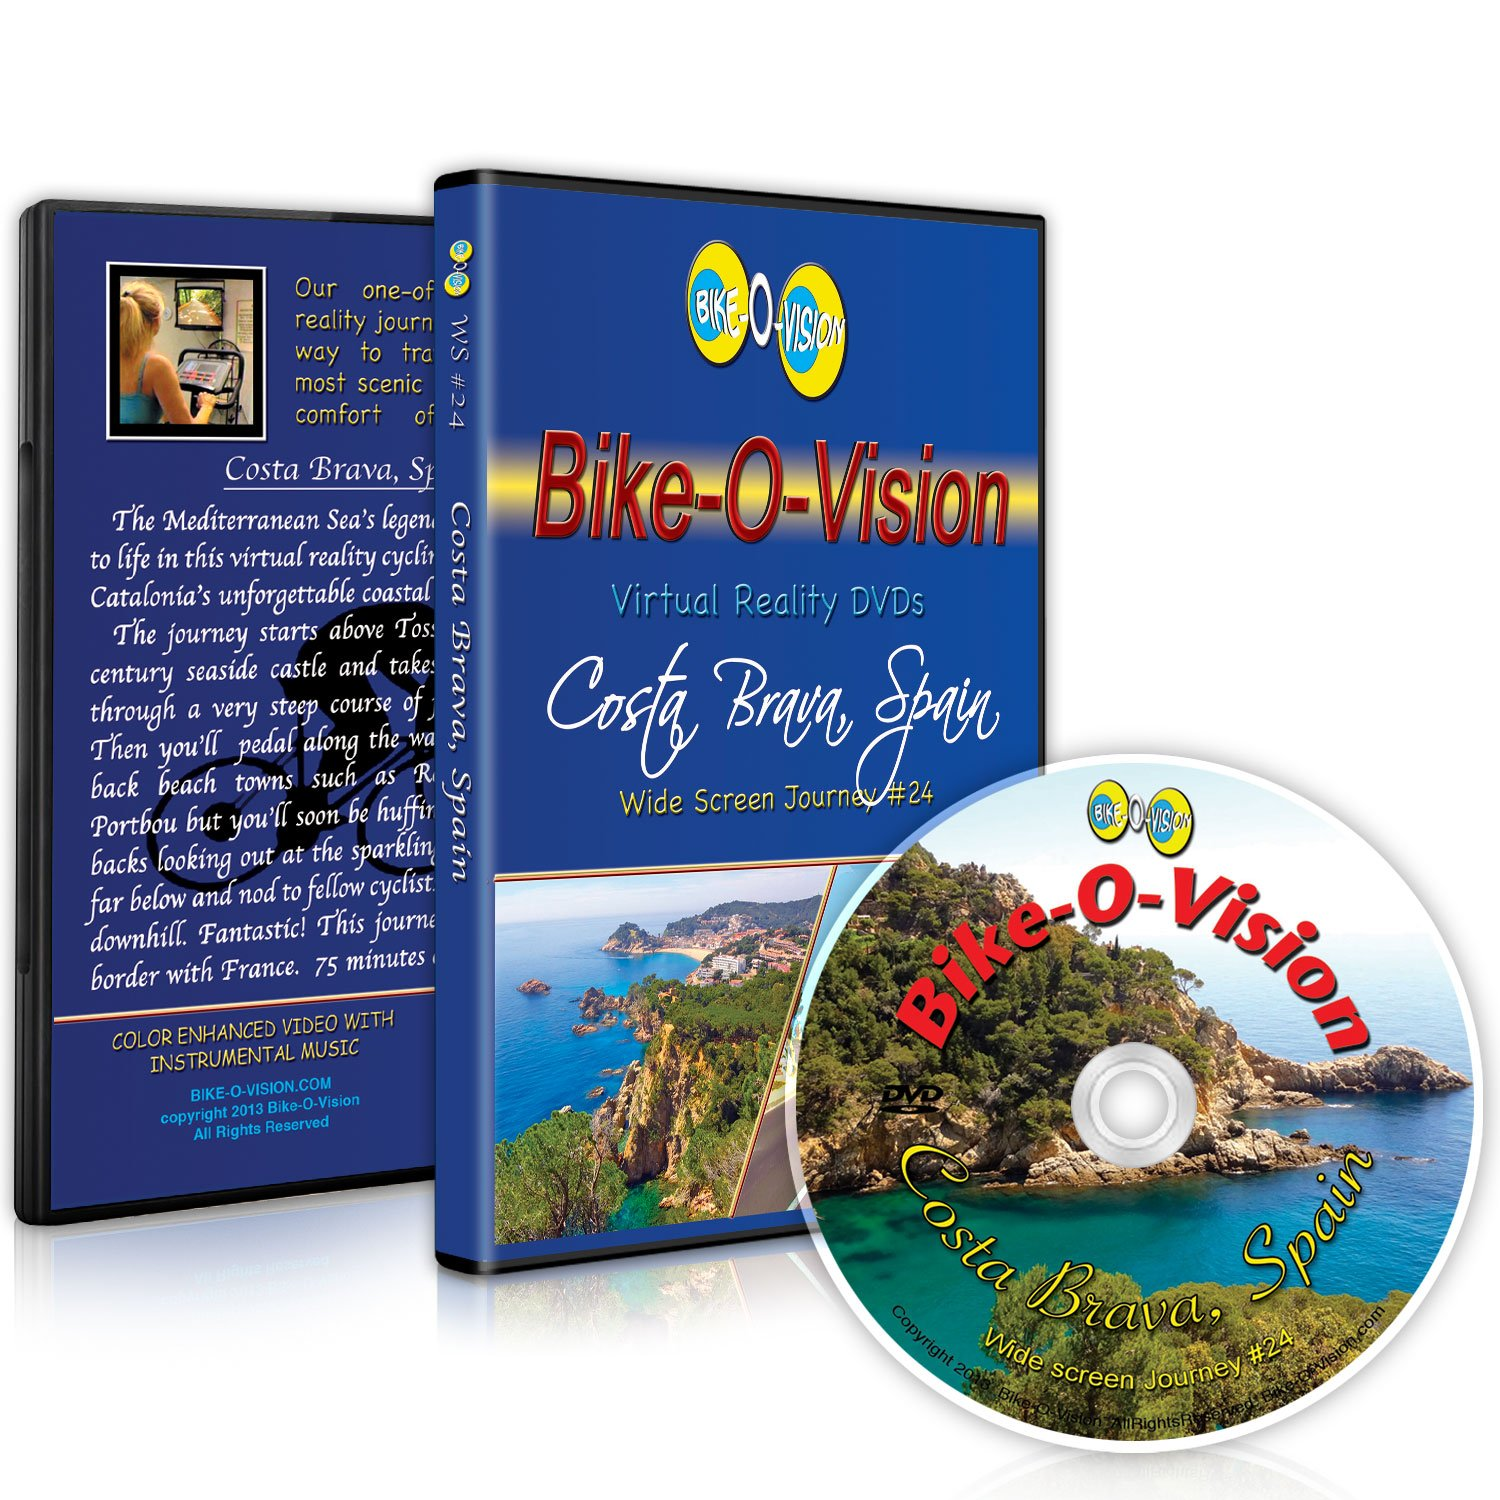 Bike-O-Vision - Virtual Cycling Adventure - Costa Brava, Spain - Perfect for Indoor Cycling and Treadmill Workouts - Cardio Fitness Scenery Video (Widescreen DVD #24)